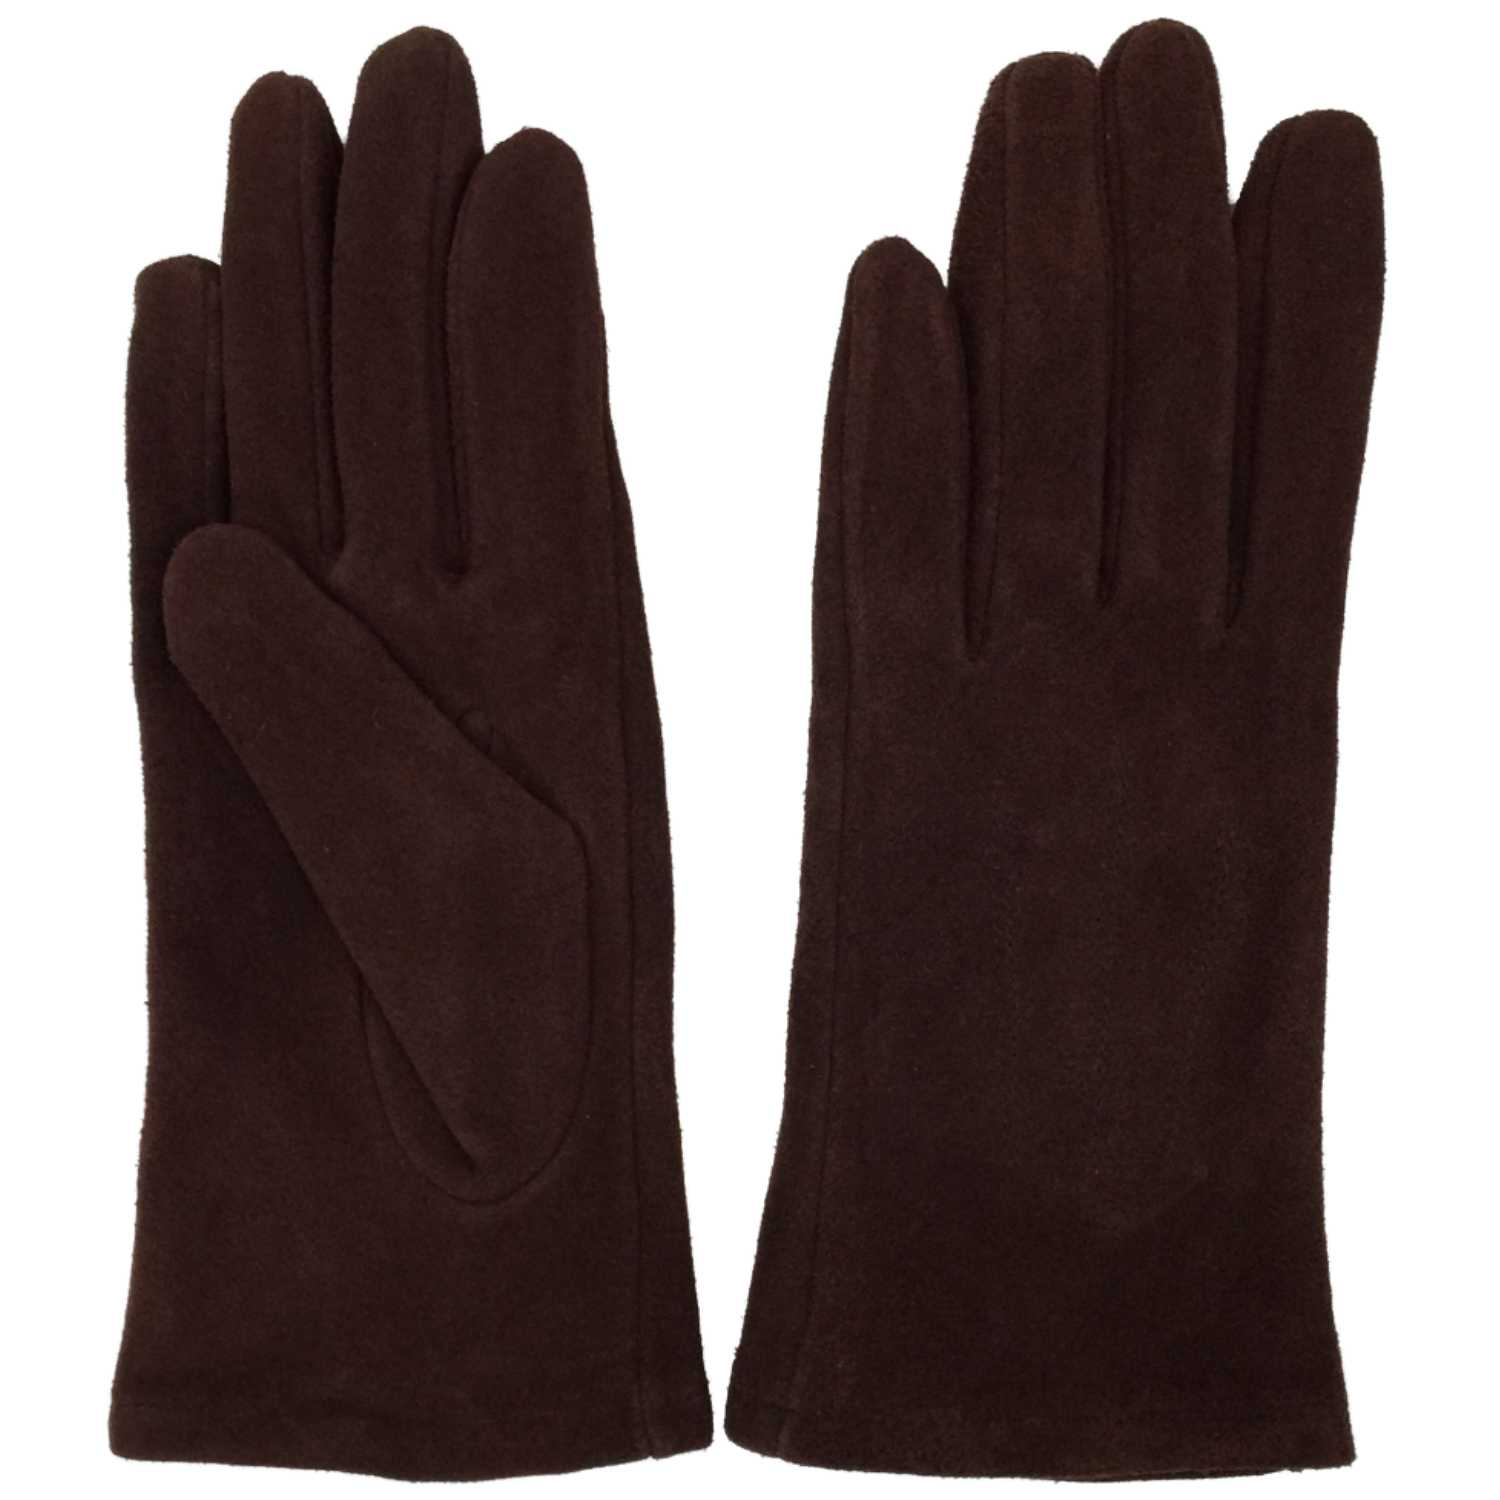 a1171b17e Womens Brown Suede Leather Driving Gloves Fleece Lined - Walmart.com